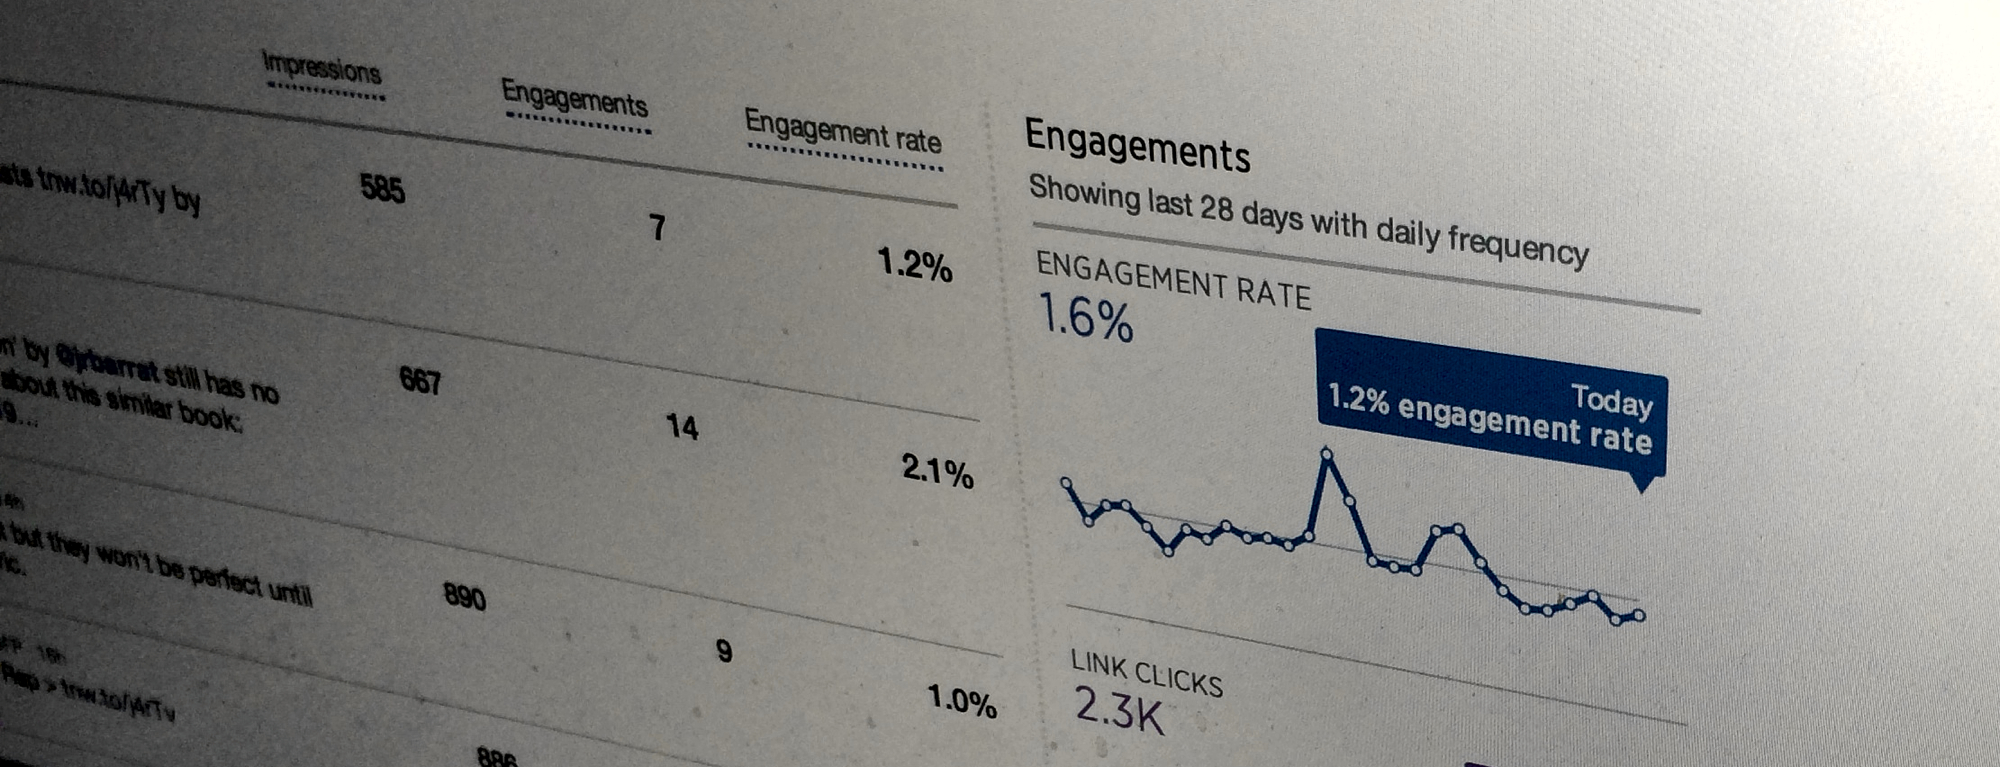 Twitter Analytics Could Turn Us Into Engagement Addicts